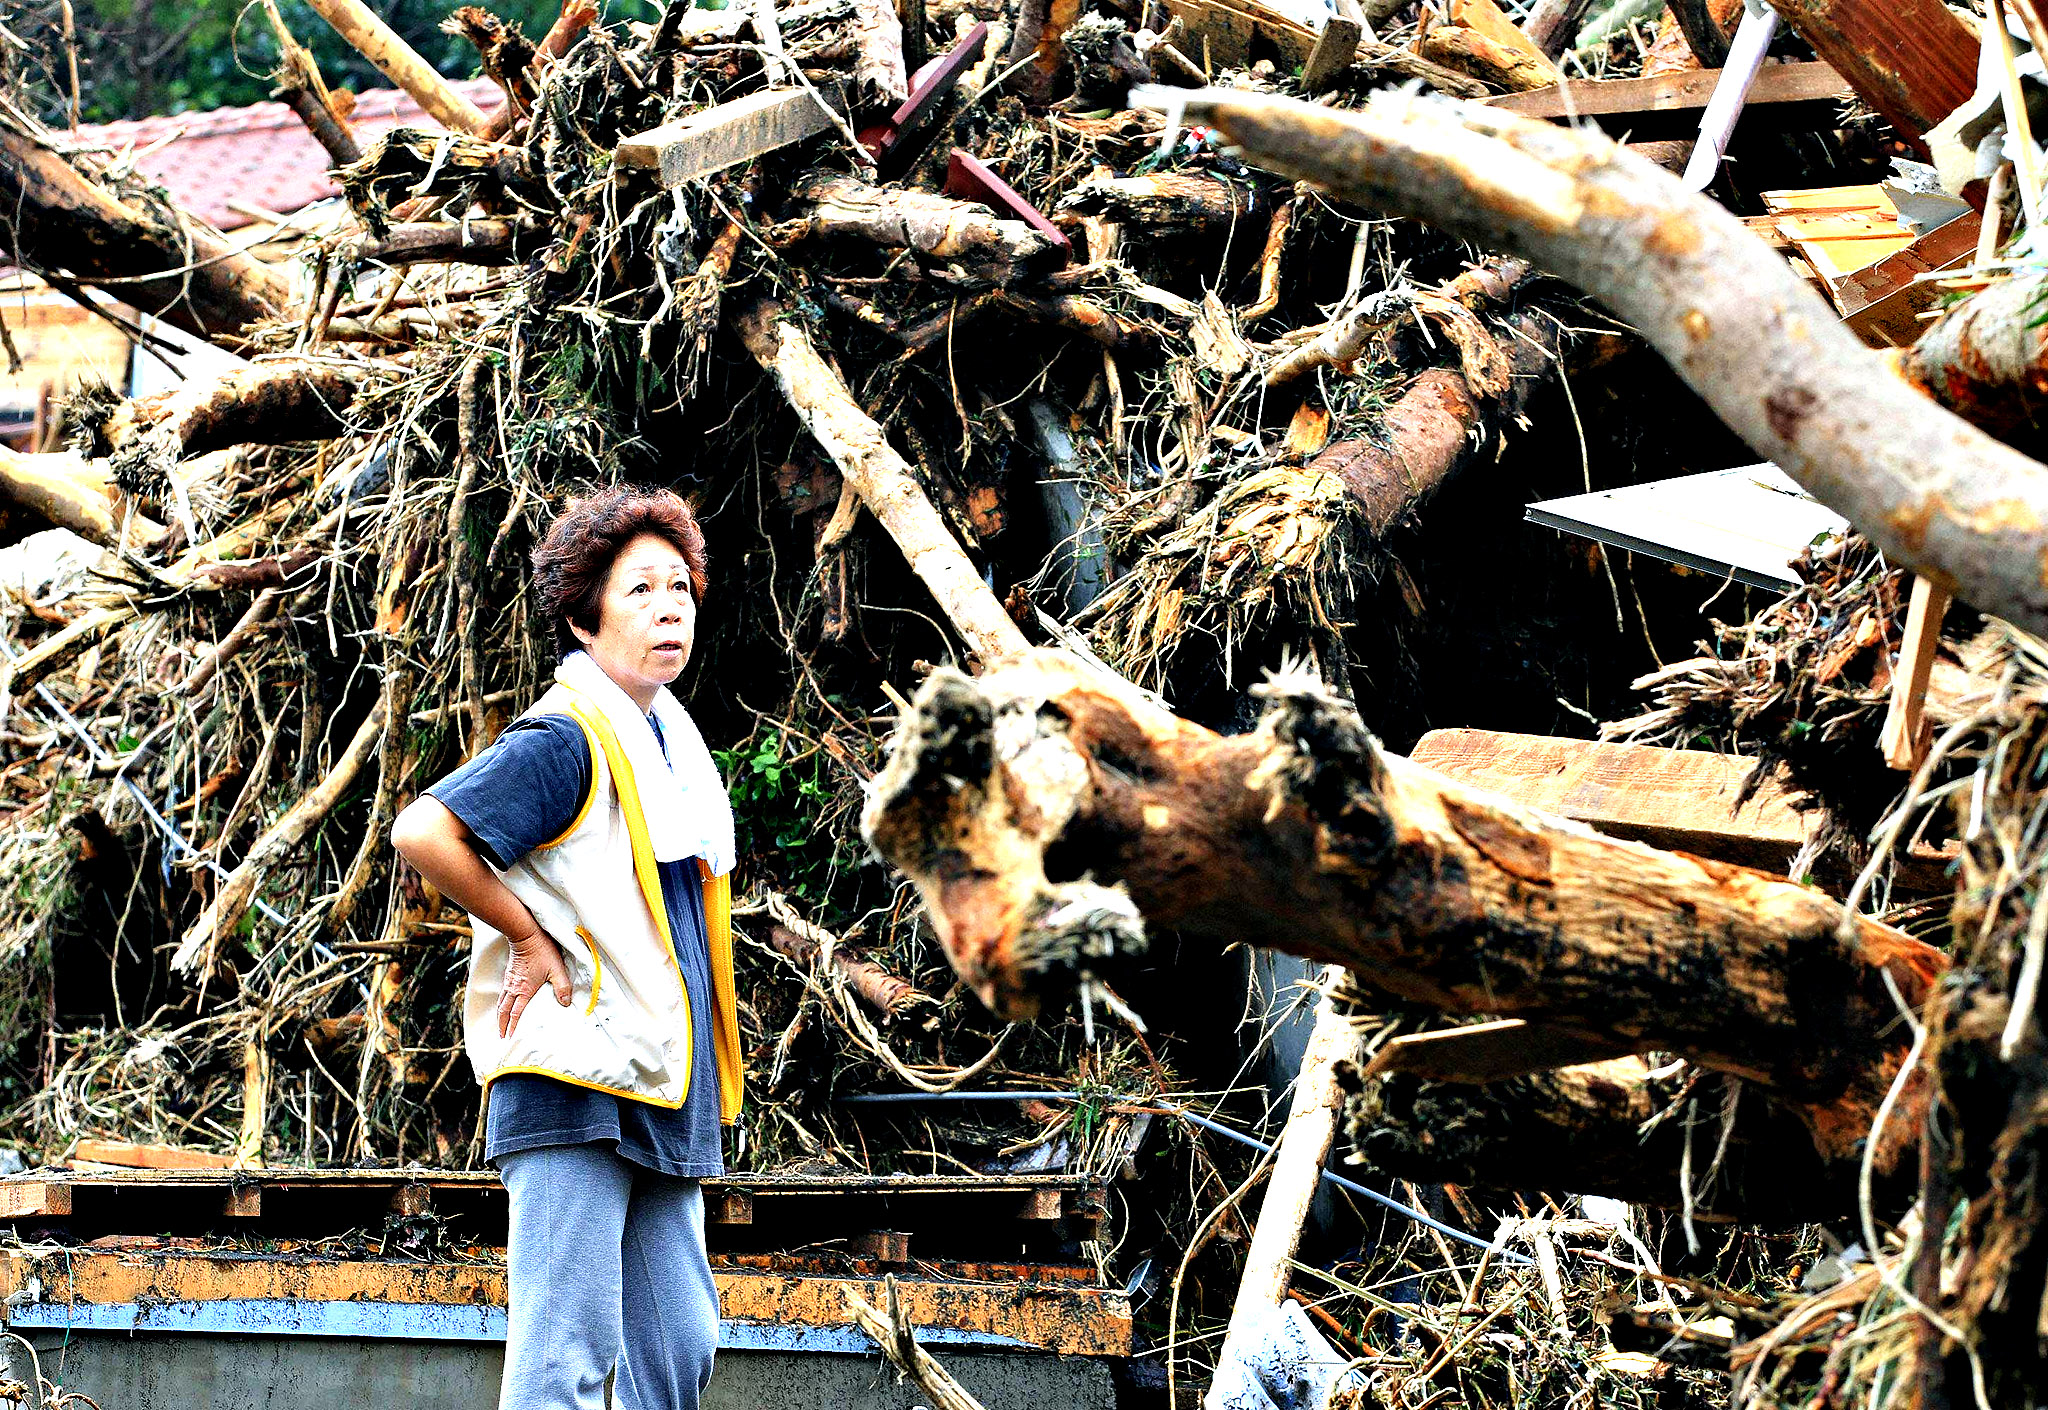 A woman reacts in front of collapsed houses following a landslide caused by Typhoon Wipha on Izu Oshima island, south of Tokyo. Eight people were killed and over 30 missing, with nearly 20,000 people ordered to evacuate and hundreds of flights cancelled as Typhoon Wipha pummelled the Tokyo region on Wednesday, leaving piles of wreckage on one small island but largely sparing the capital.  Mandatory Credit.